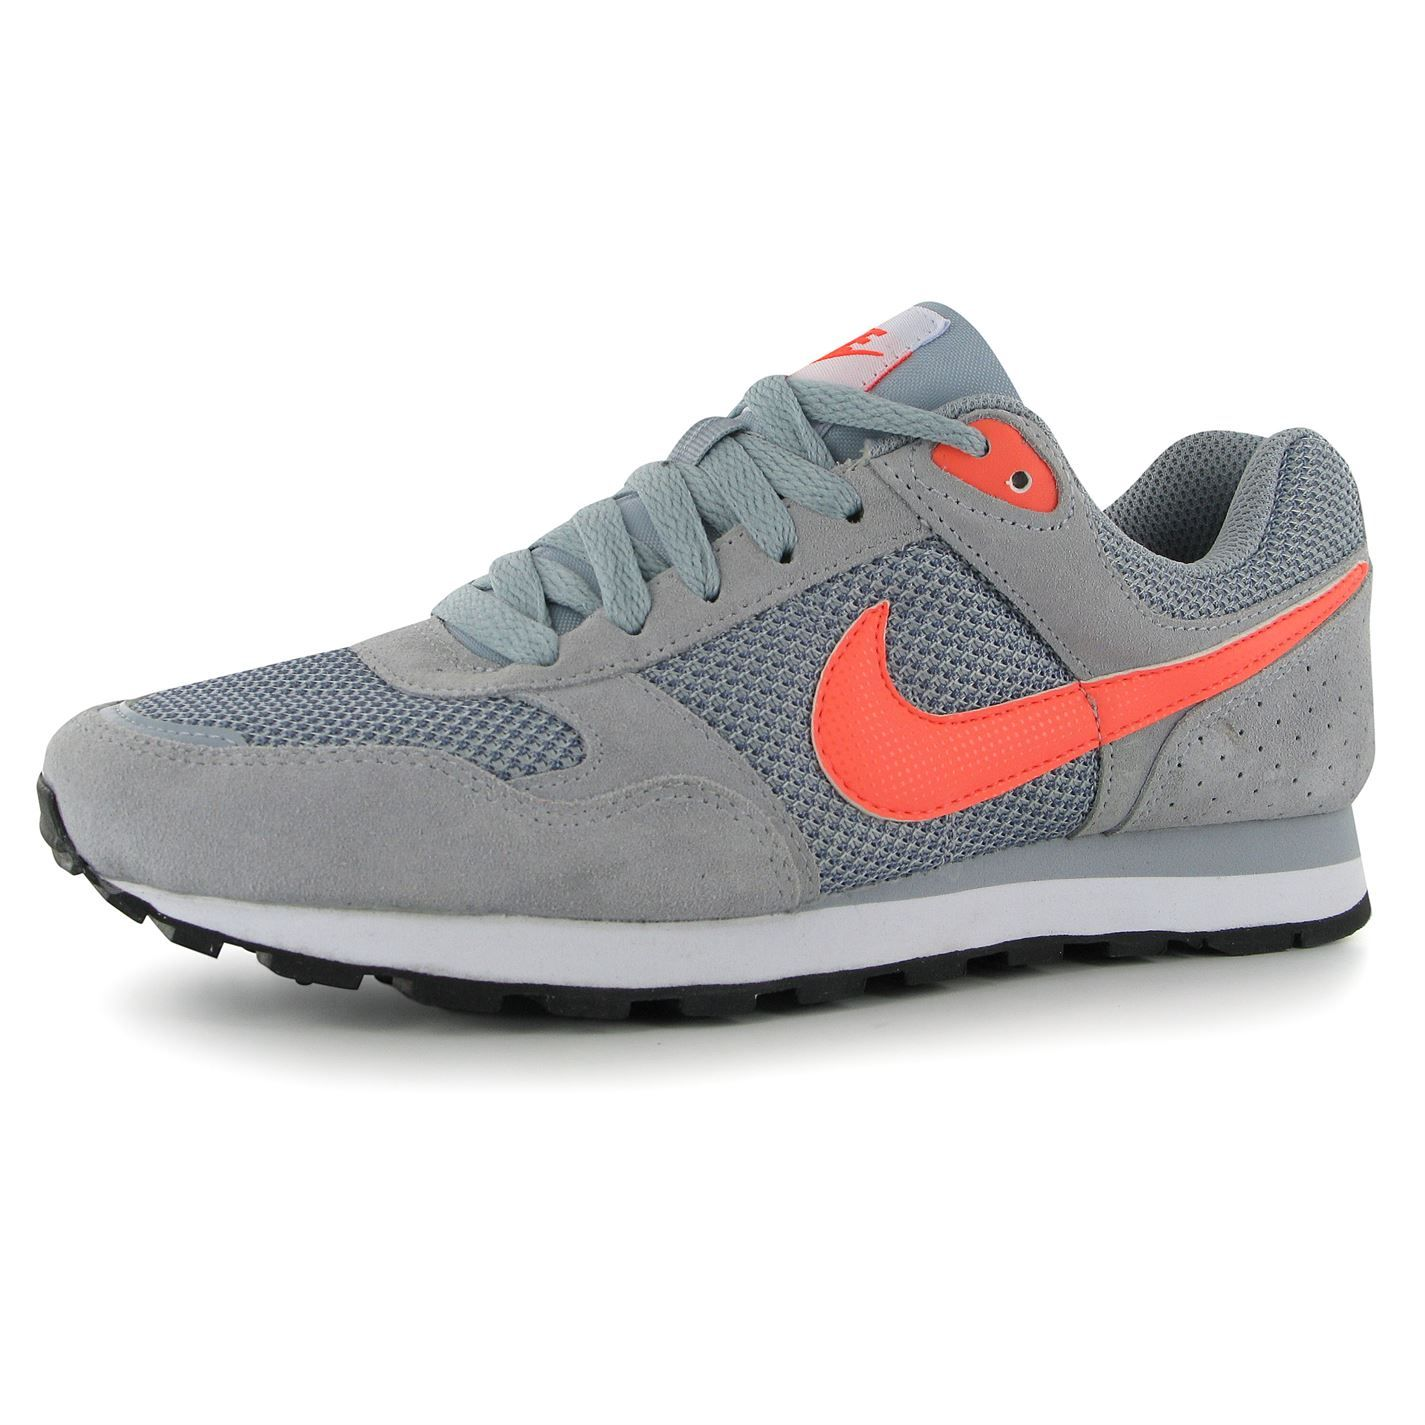 nike nike md runner ladies trainers ladies trainers nice shoes pinterest. Black Bedroom Furniture Sets. Home Design Ideas